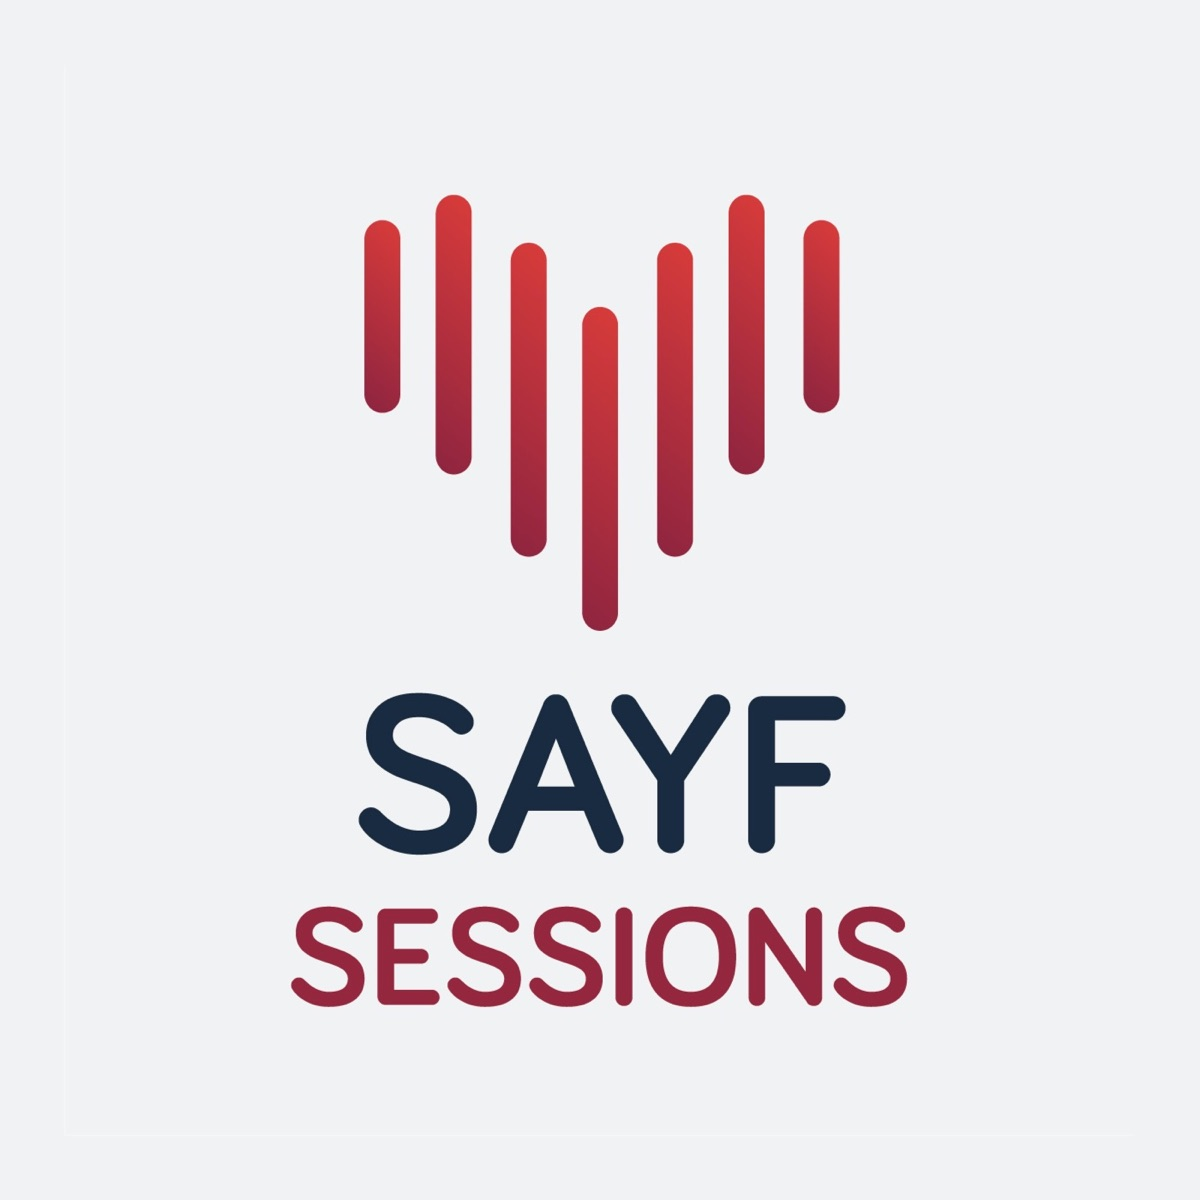 SAYF Sessions